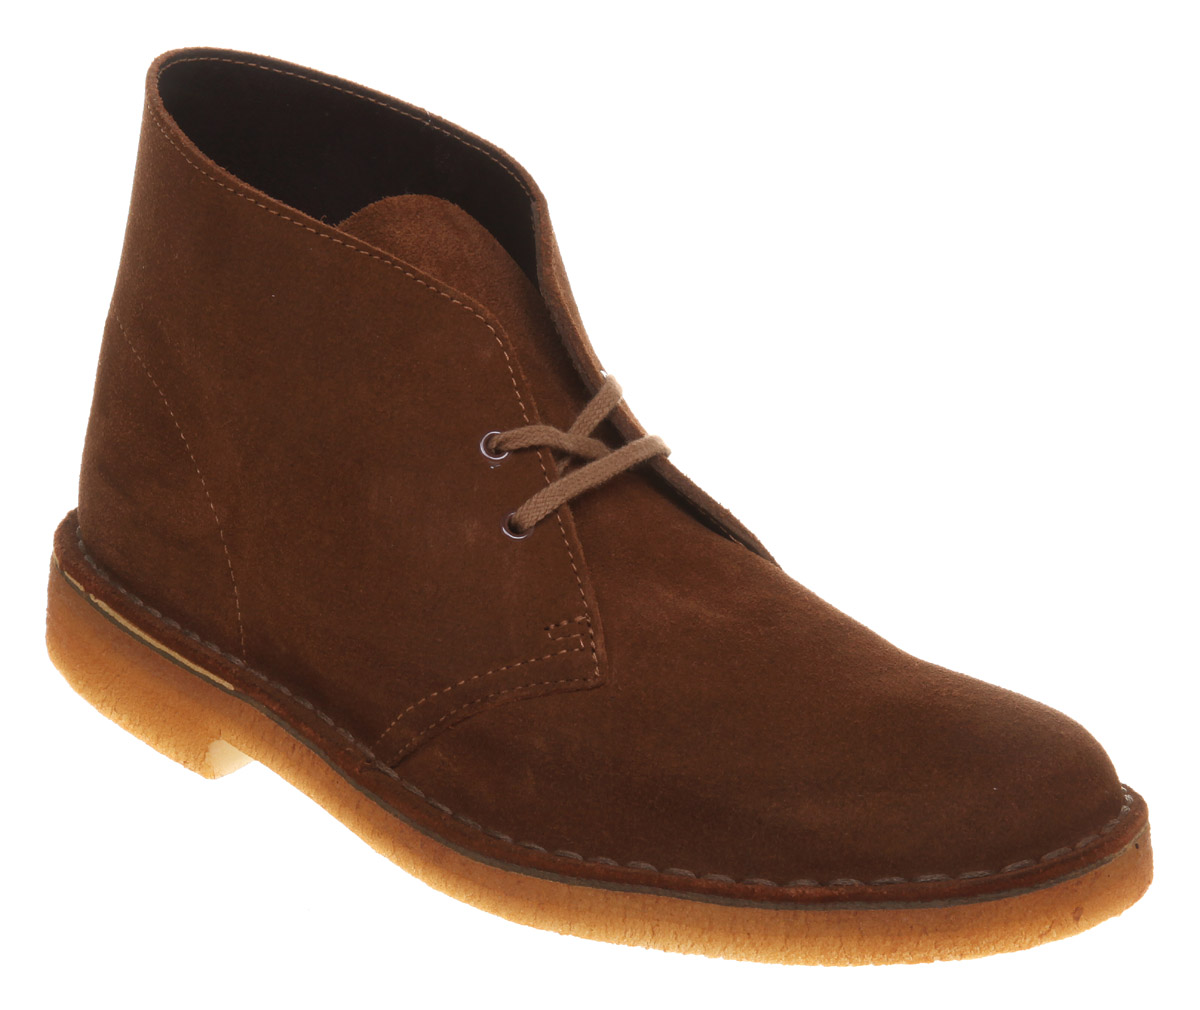 Mens-Clarks-Desert-Boot-Cola-Suede-Boots